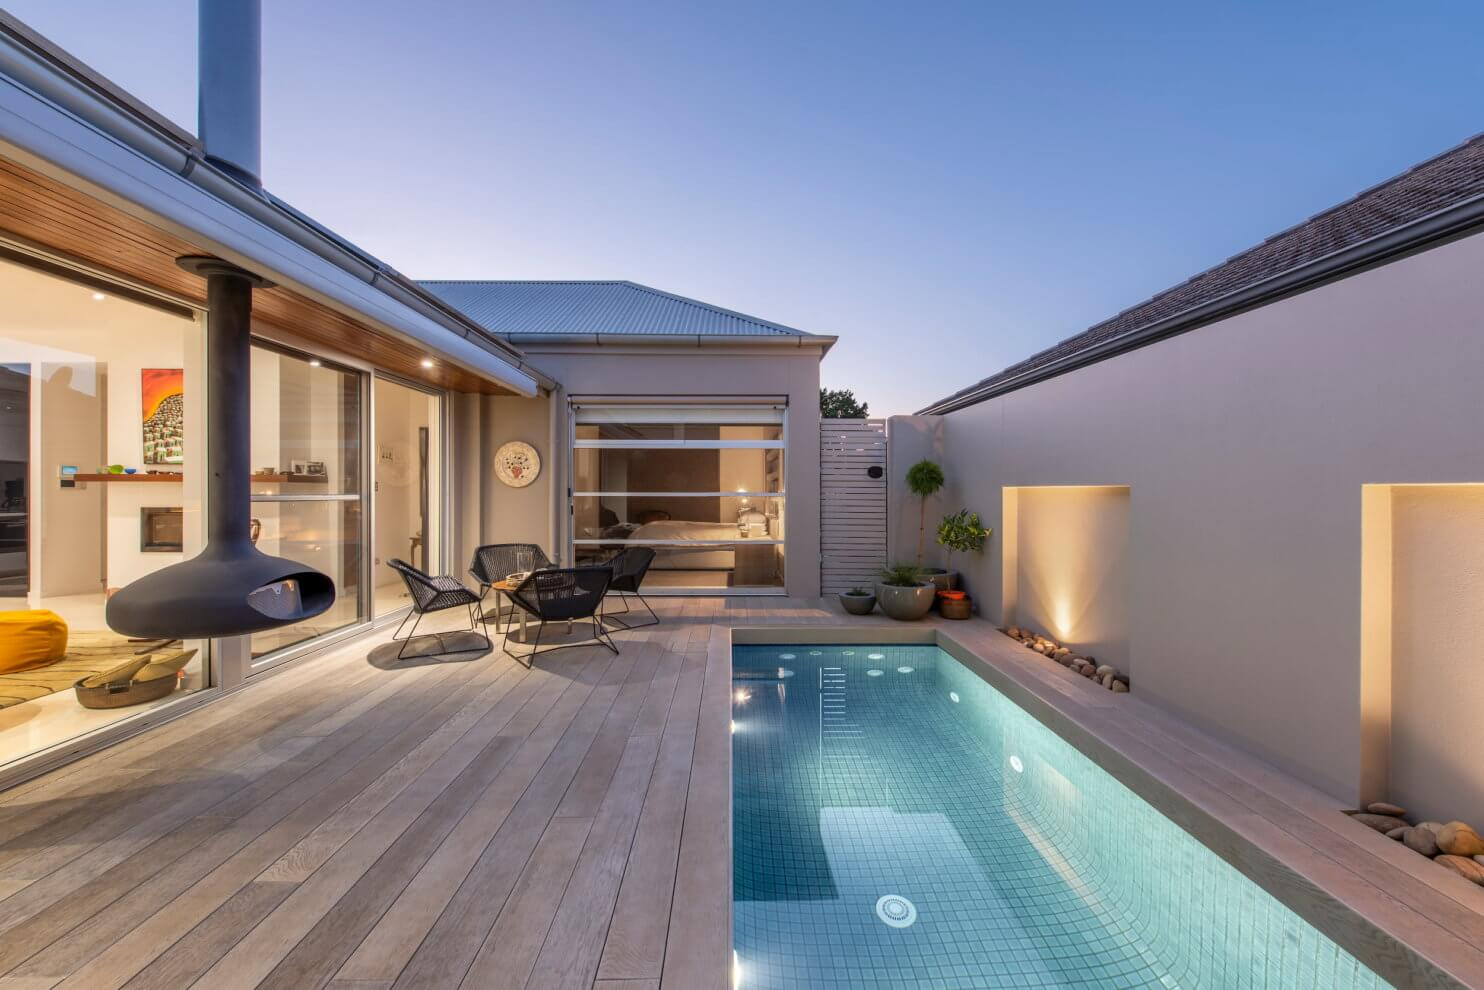 The Pool Deck Renovation Adelaide